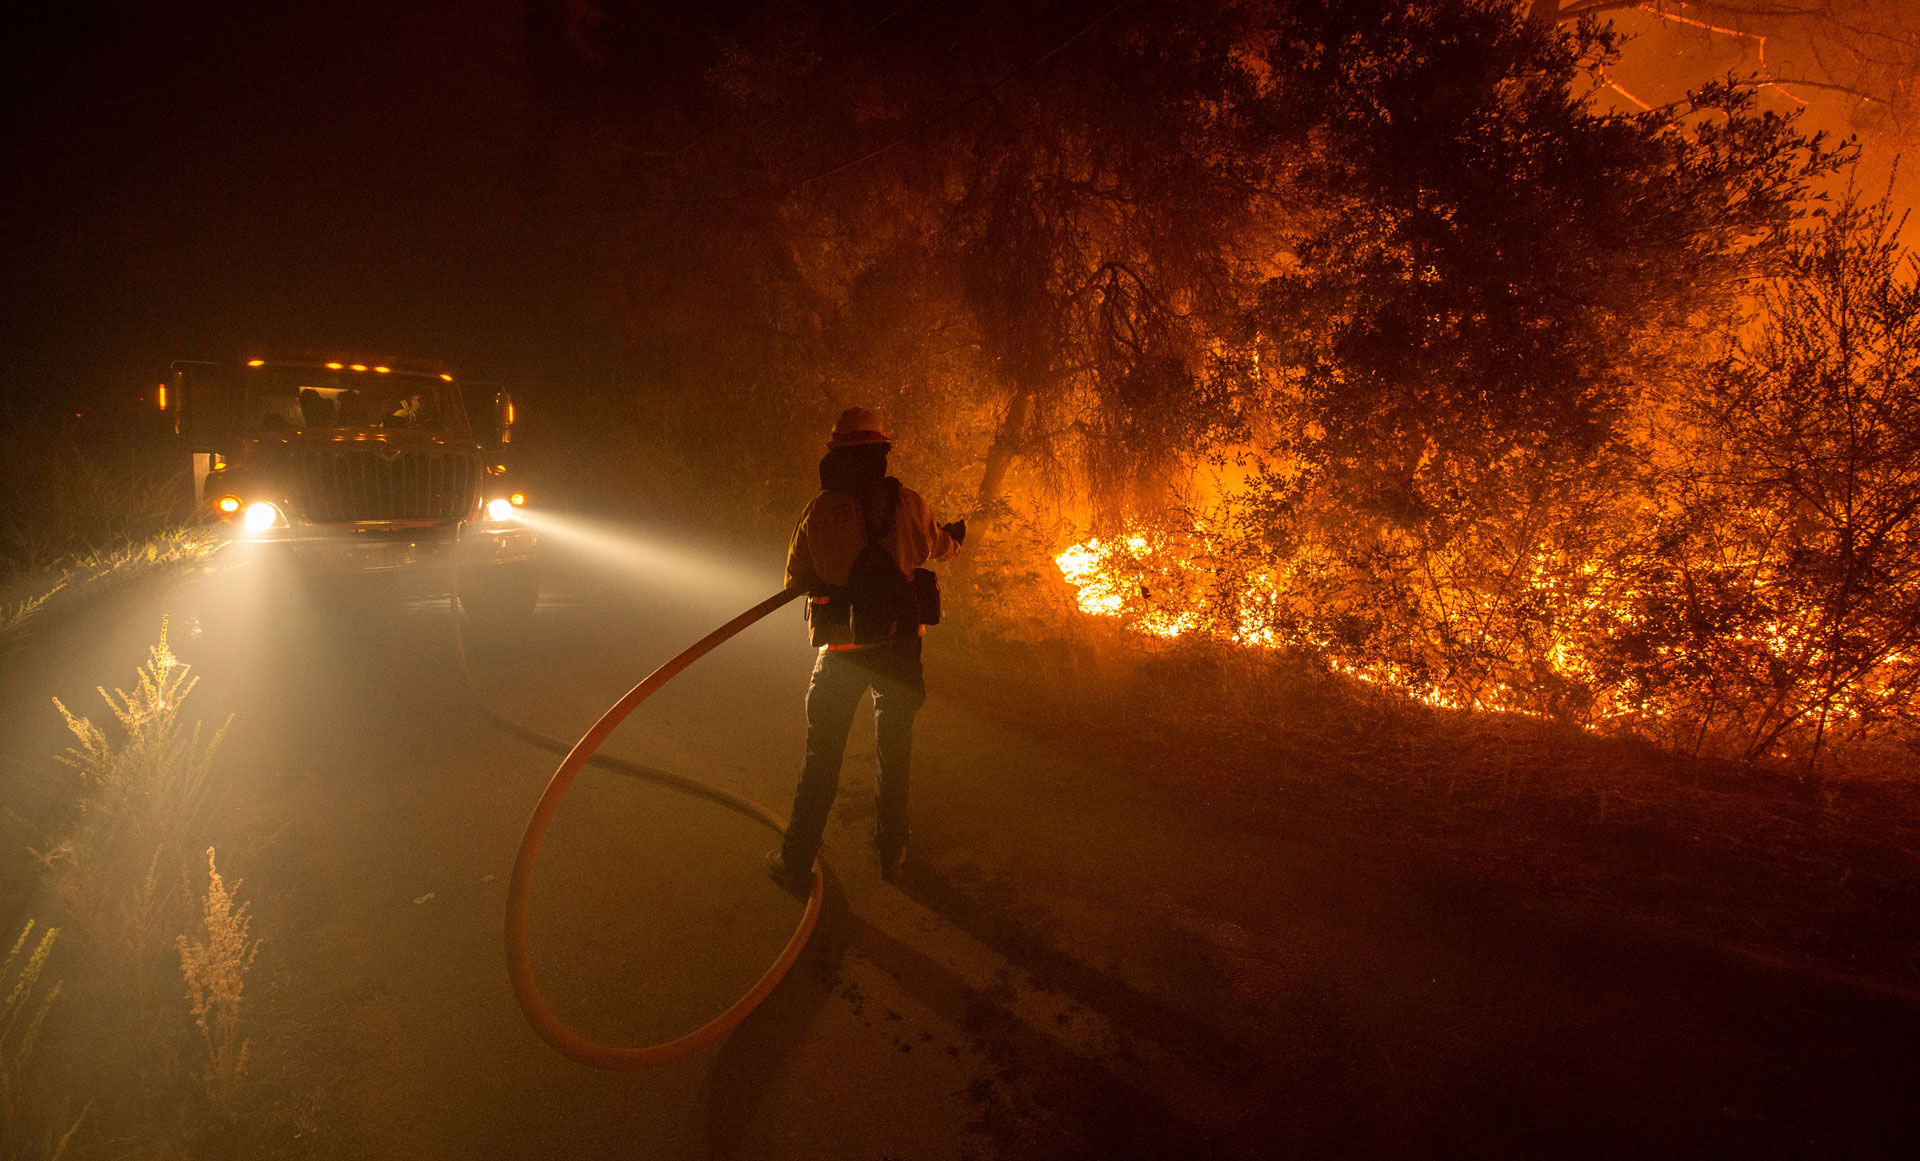 A firefighter douses flames as they approach a road in the Santa Cruz Mountains near Loma Prieta on September 28, 2016.